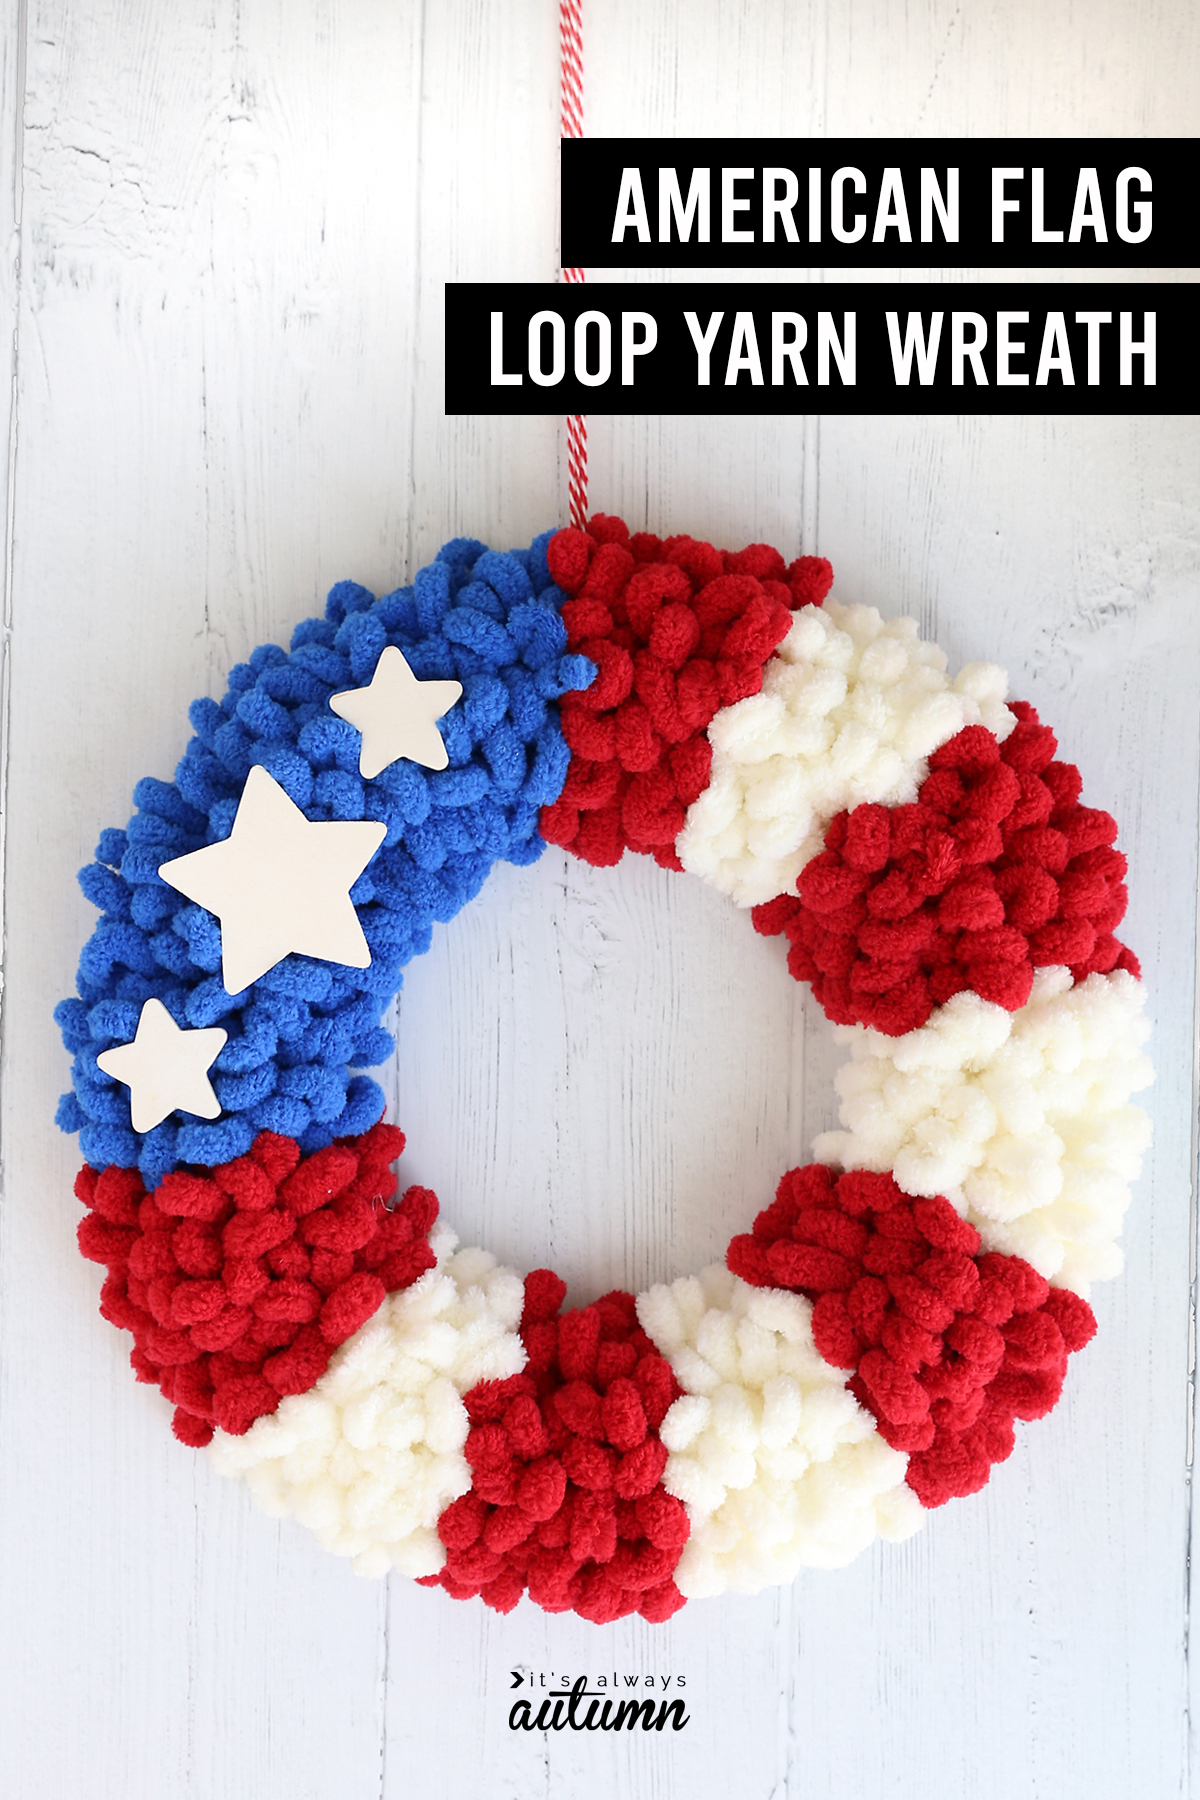 Wreath wrapped with blue, red, and white loop yarn to look like an American flag with words: American flag loop yarn wreath